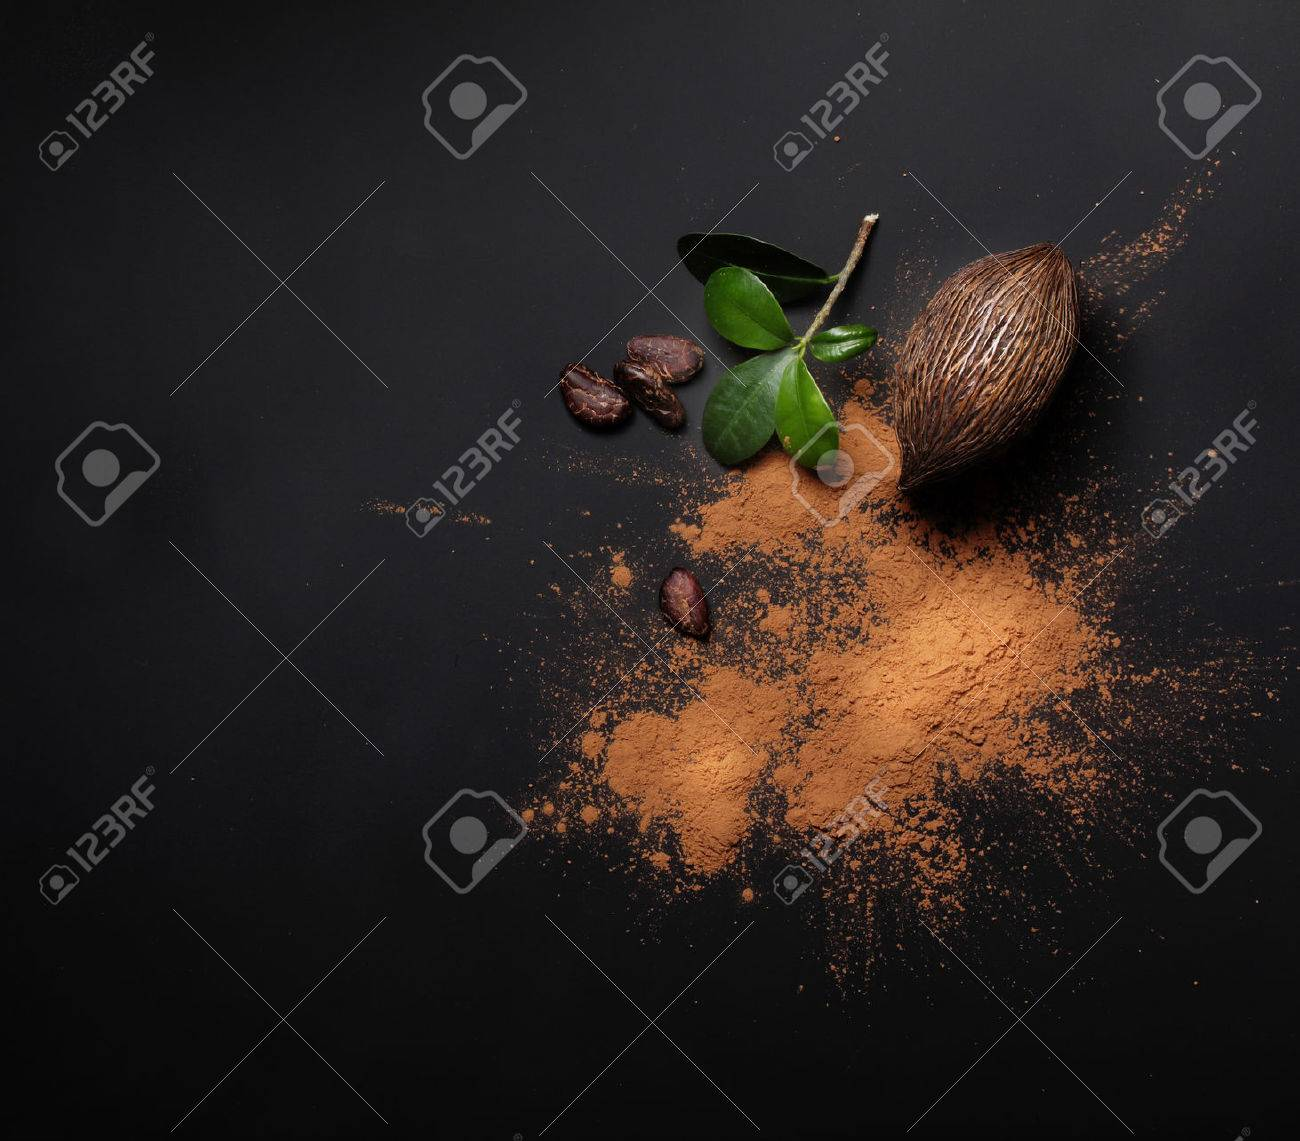 Cacao beans and powder on black background - 61262746